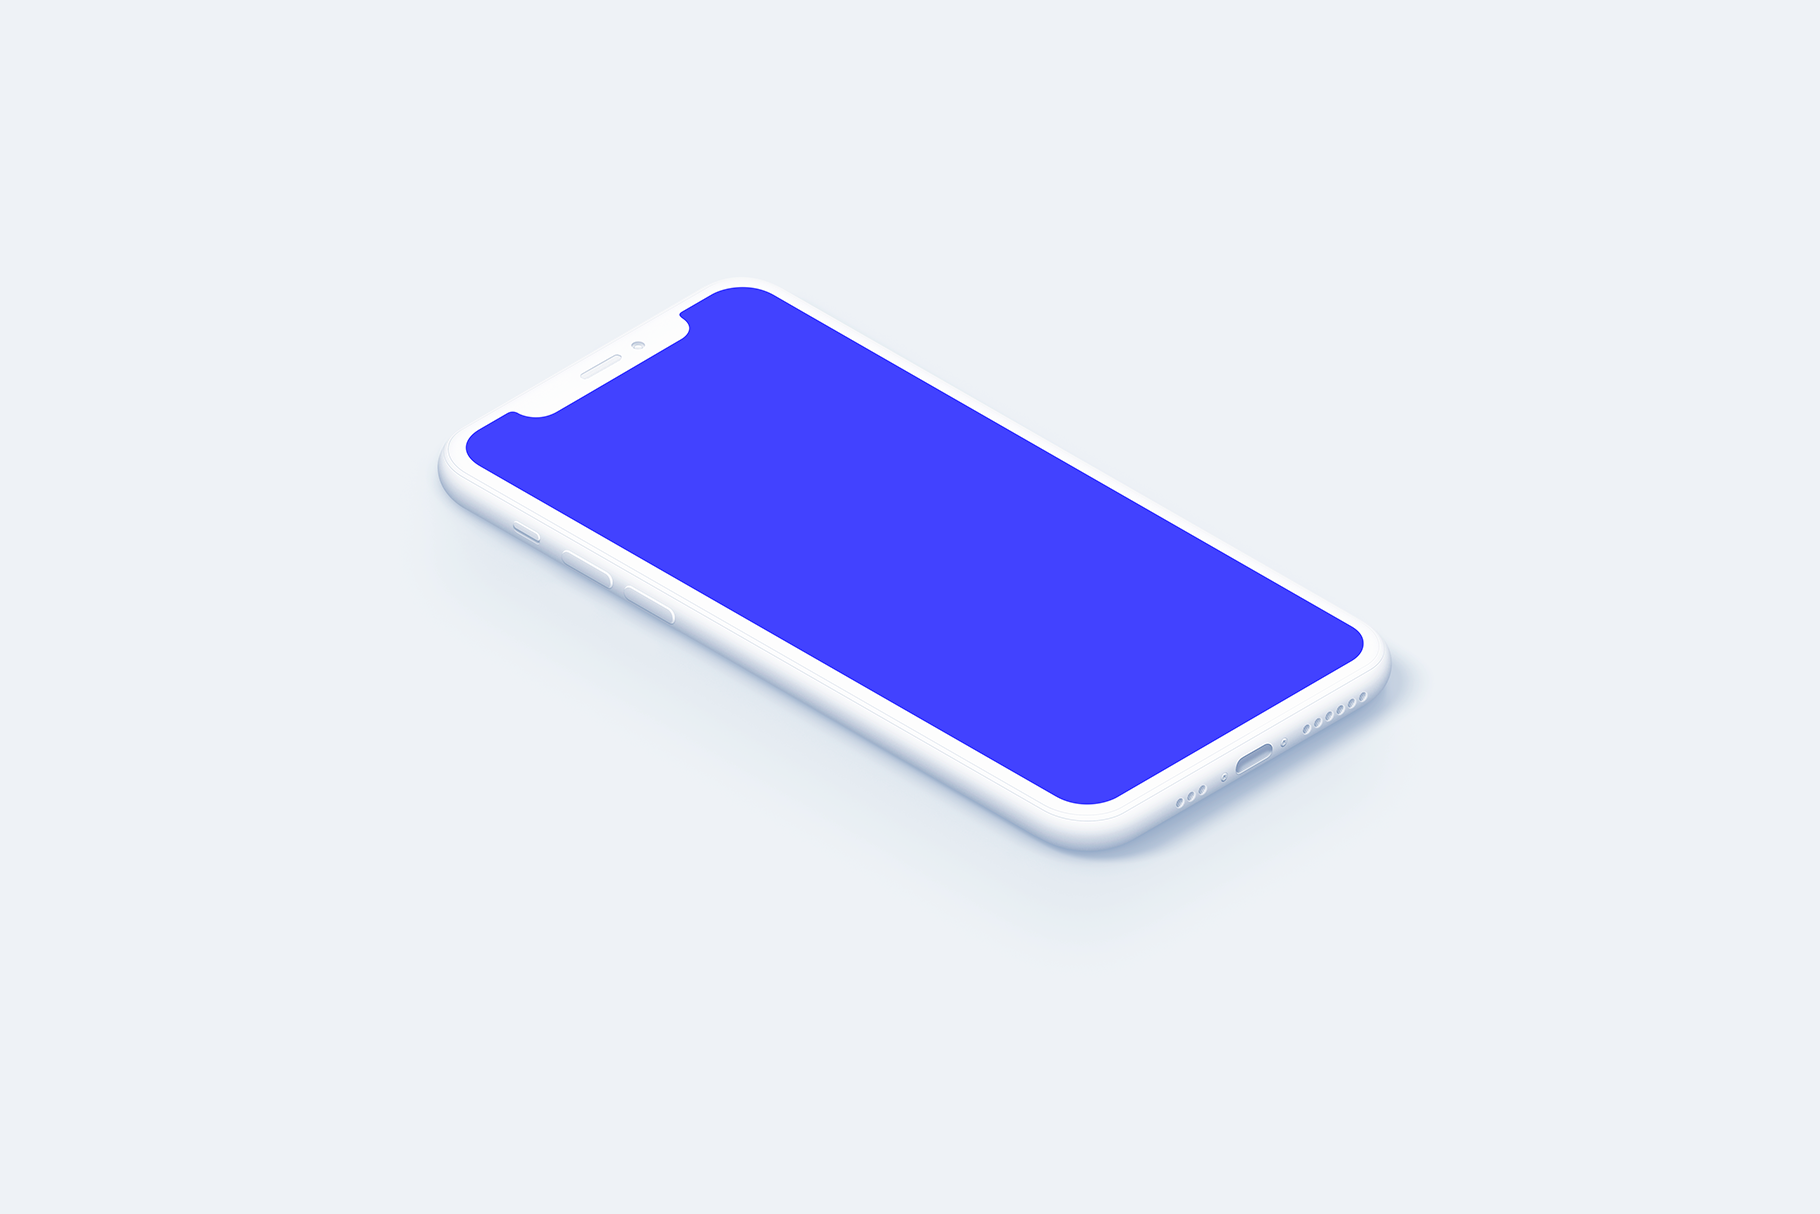 iPhone 11 Pro - 20 Clay Mockups Scenes - PSD example image 15